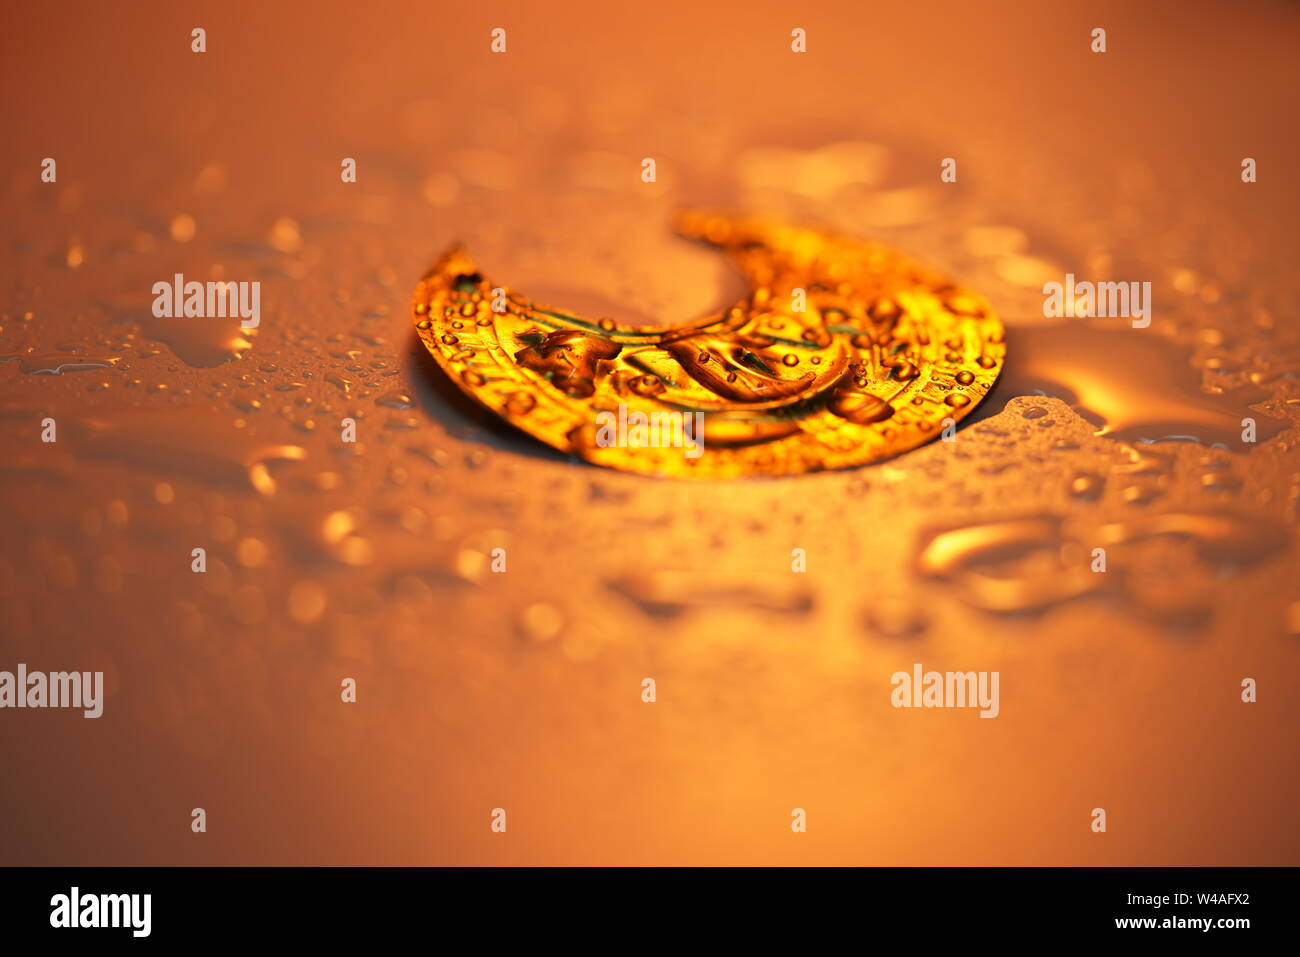 Drops on the glass tablets under tinted lighting Stock Photo